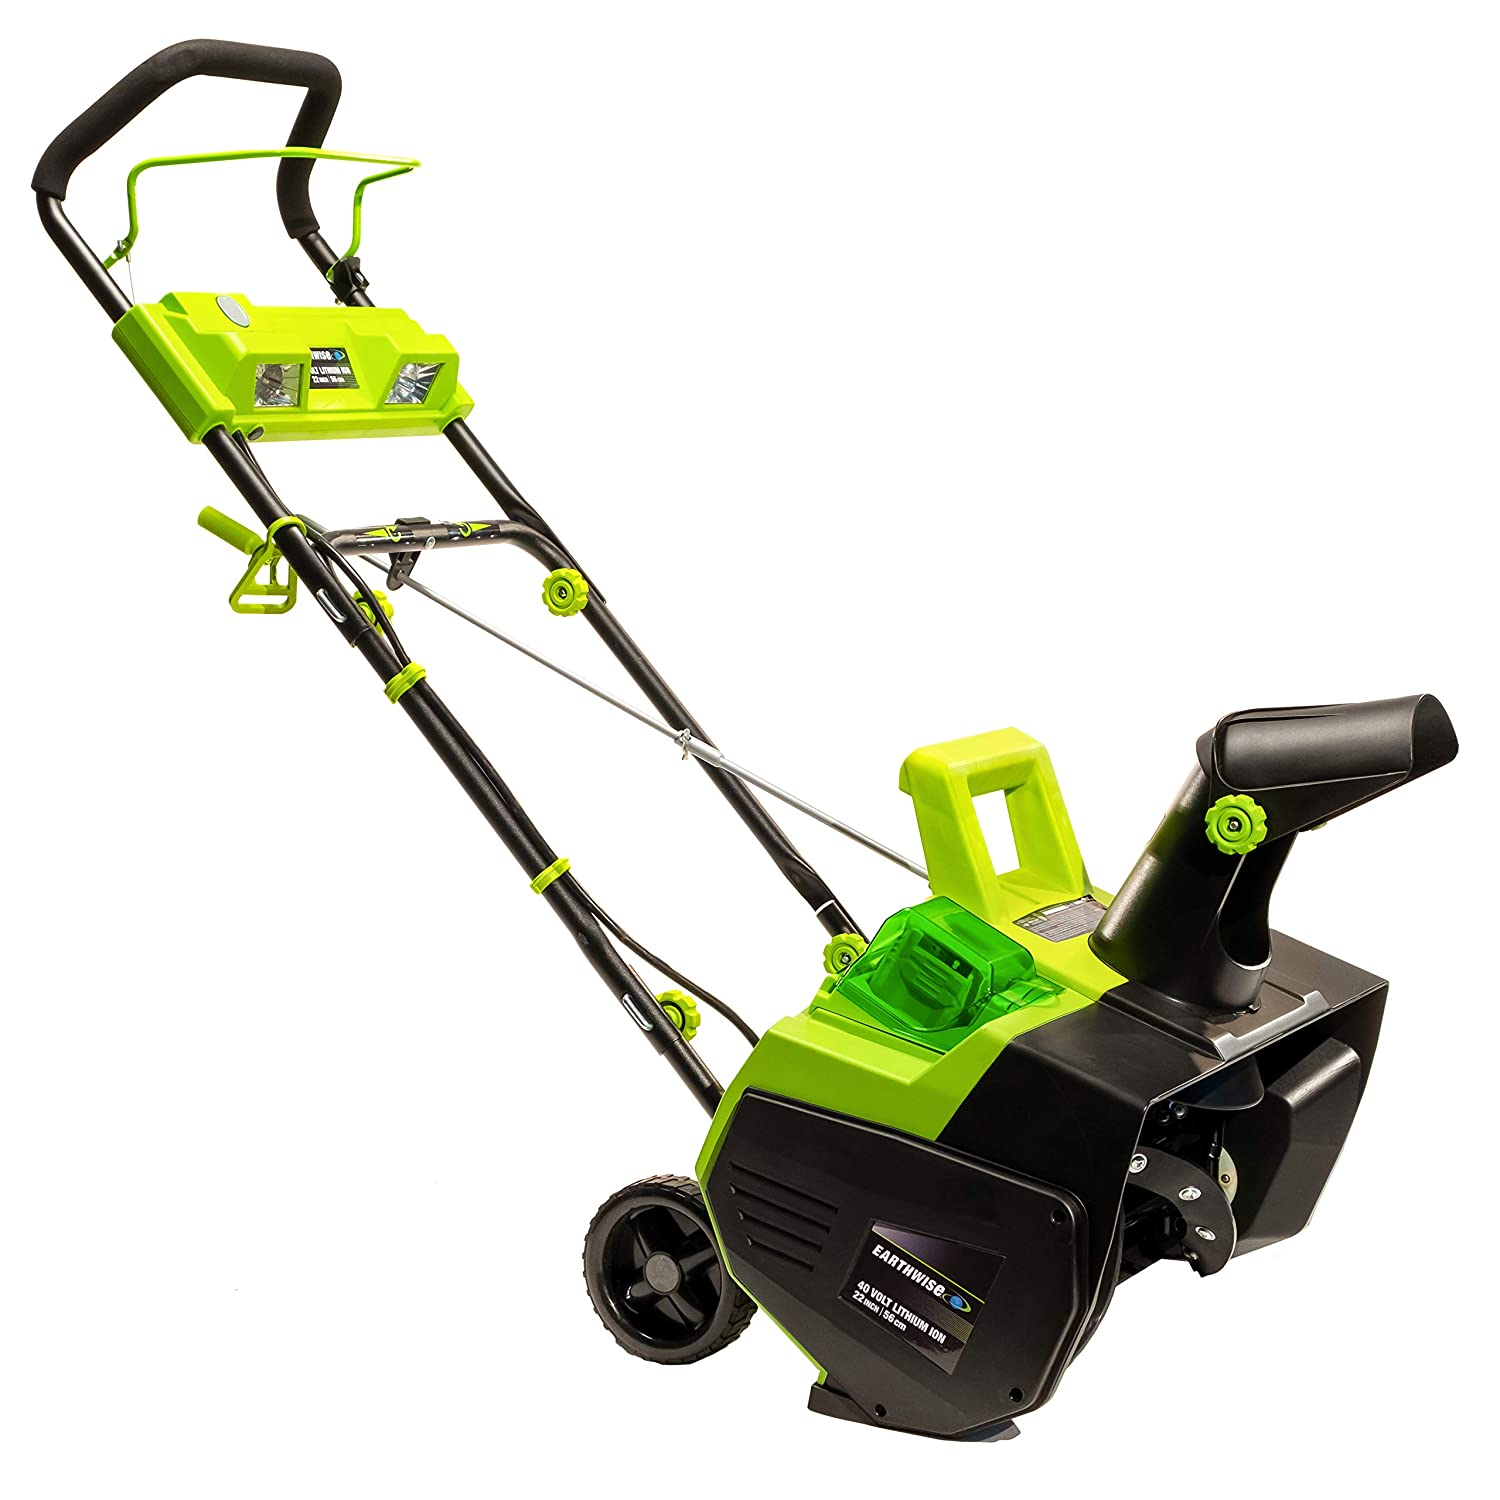 earthwise cordless snow thrower review